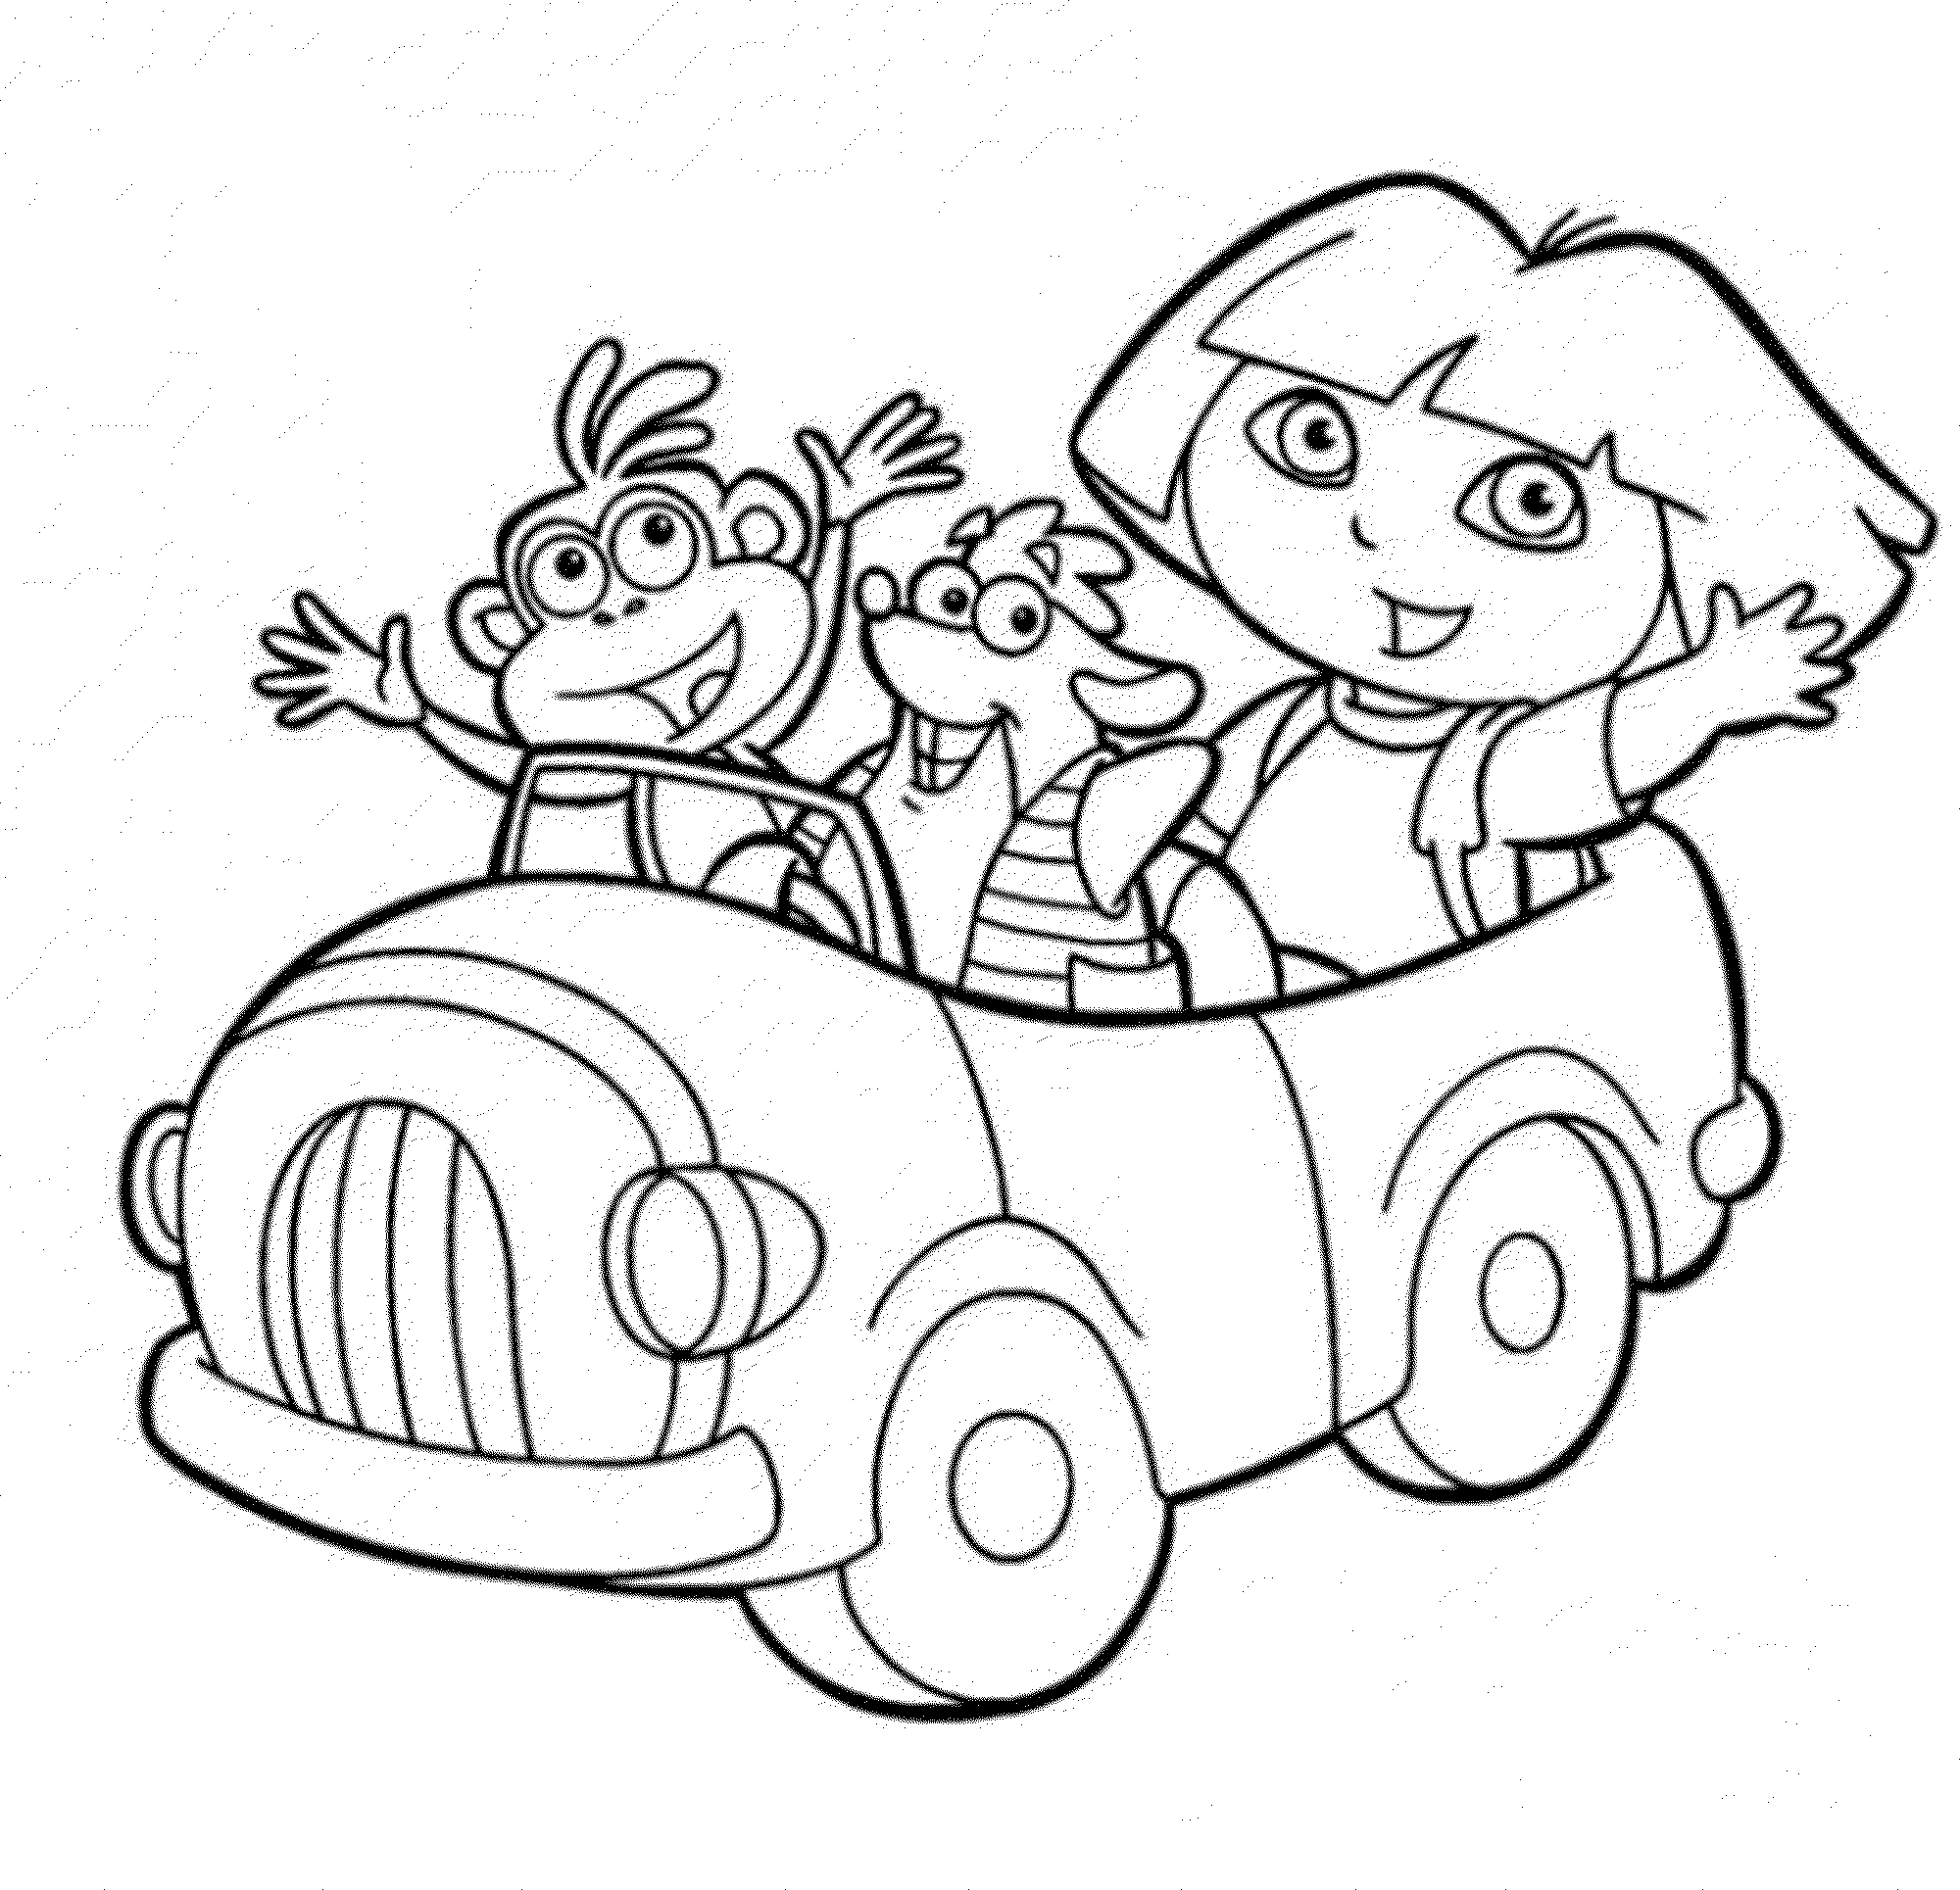 2000x1929 Security Dora The Explorer Coloring Pages Pdf